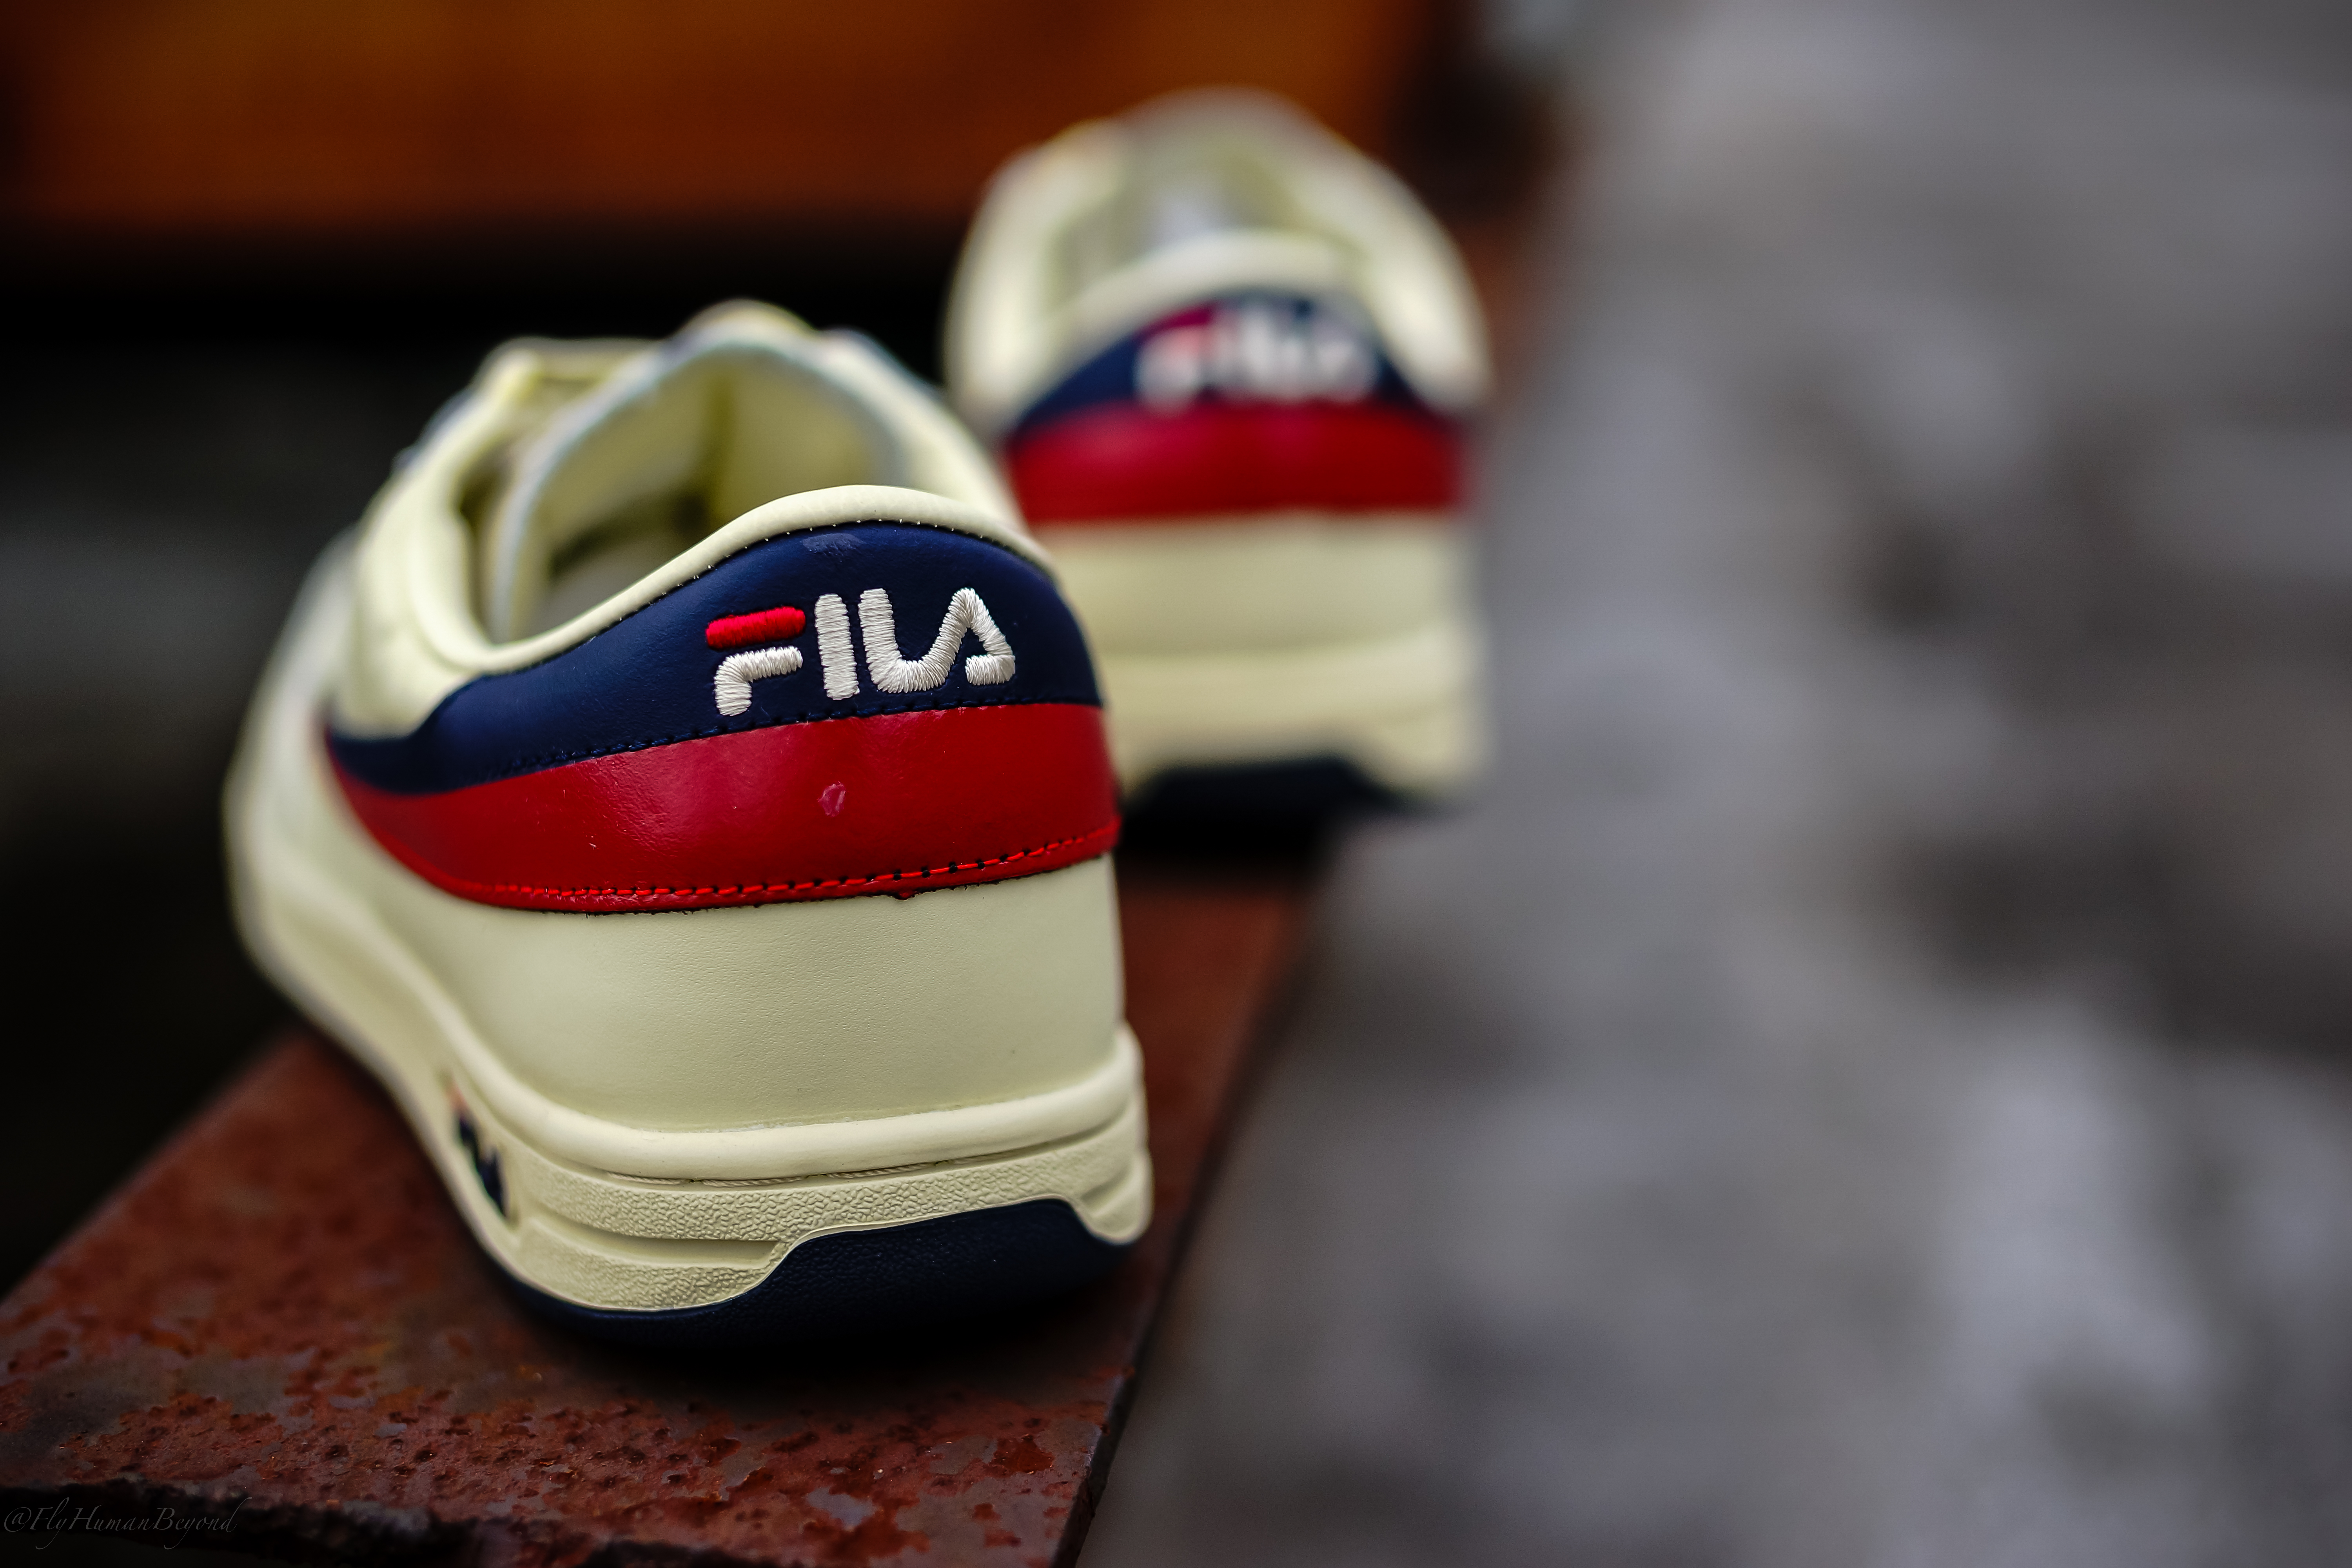 Oct Fila Sneakers Pictures